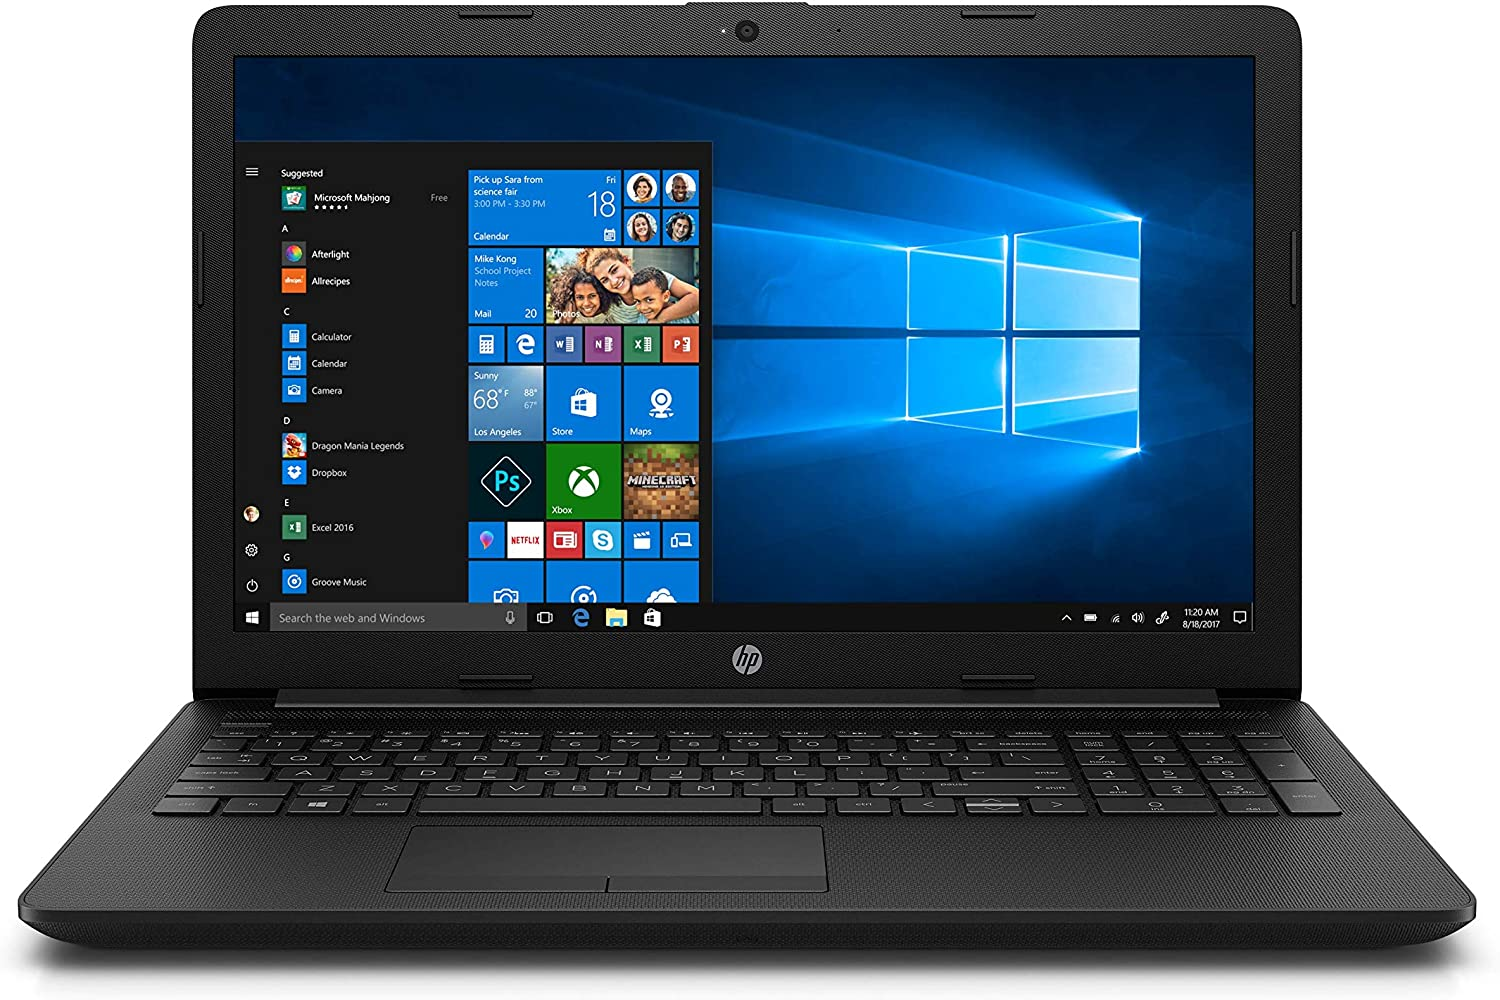 HP 15 da0389tu 15.6-inch Laptop (Pentium Gold 4417U/4GB/1TB HDD/Windows 10, Home/Integrated Graphics), Jet Black